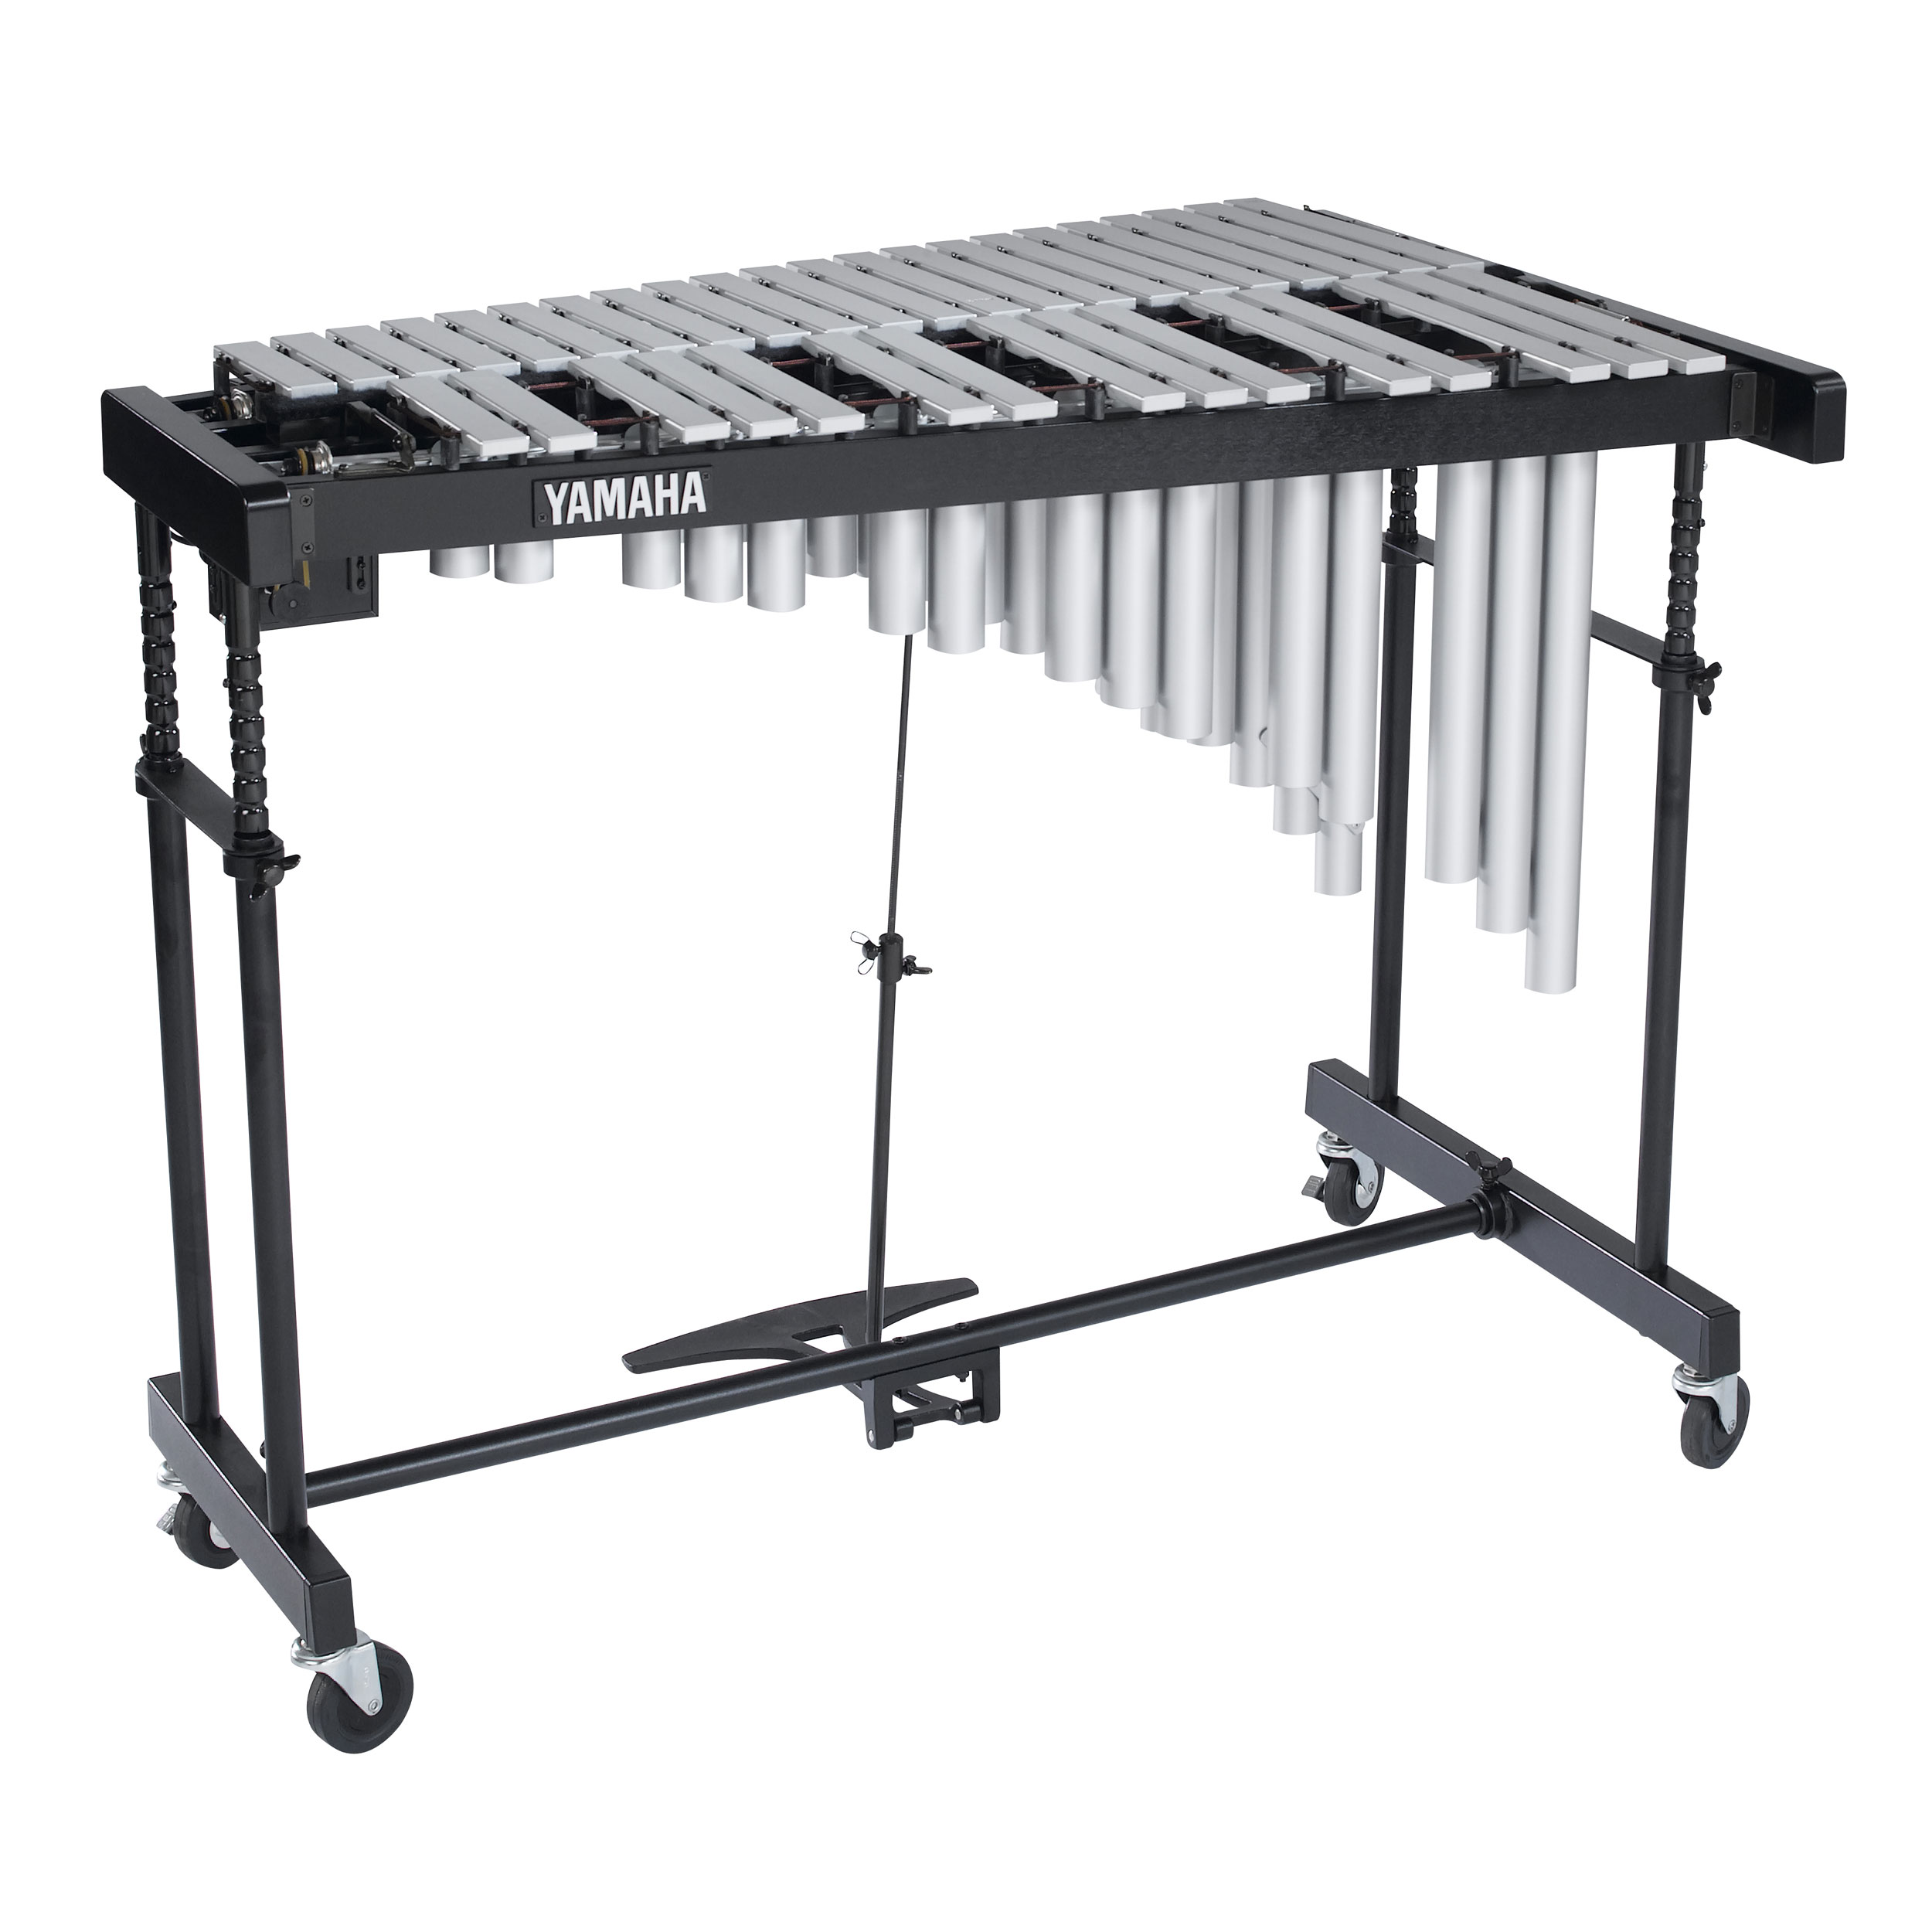 "Yamaha 3 Octave Silver Standard Vibraphone - 1 1/4"" non-graduated bars and silver resonators with Cover"